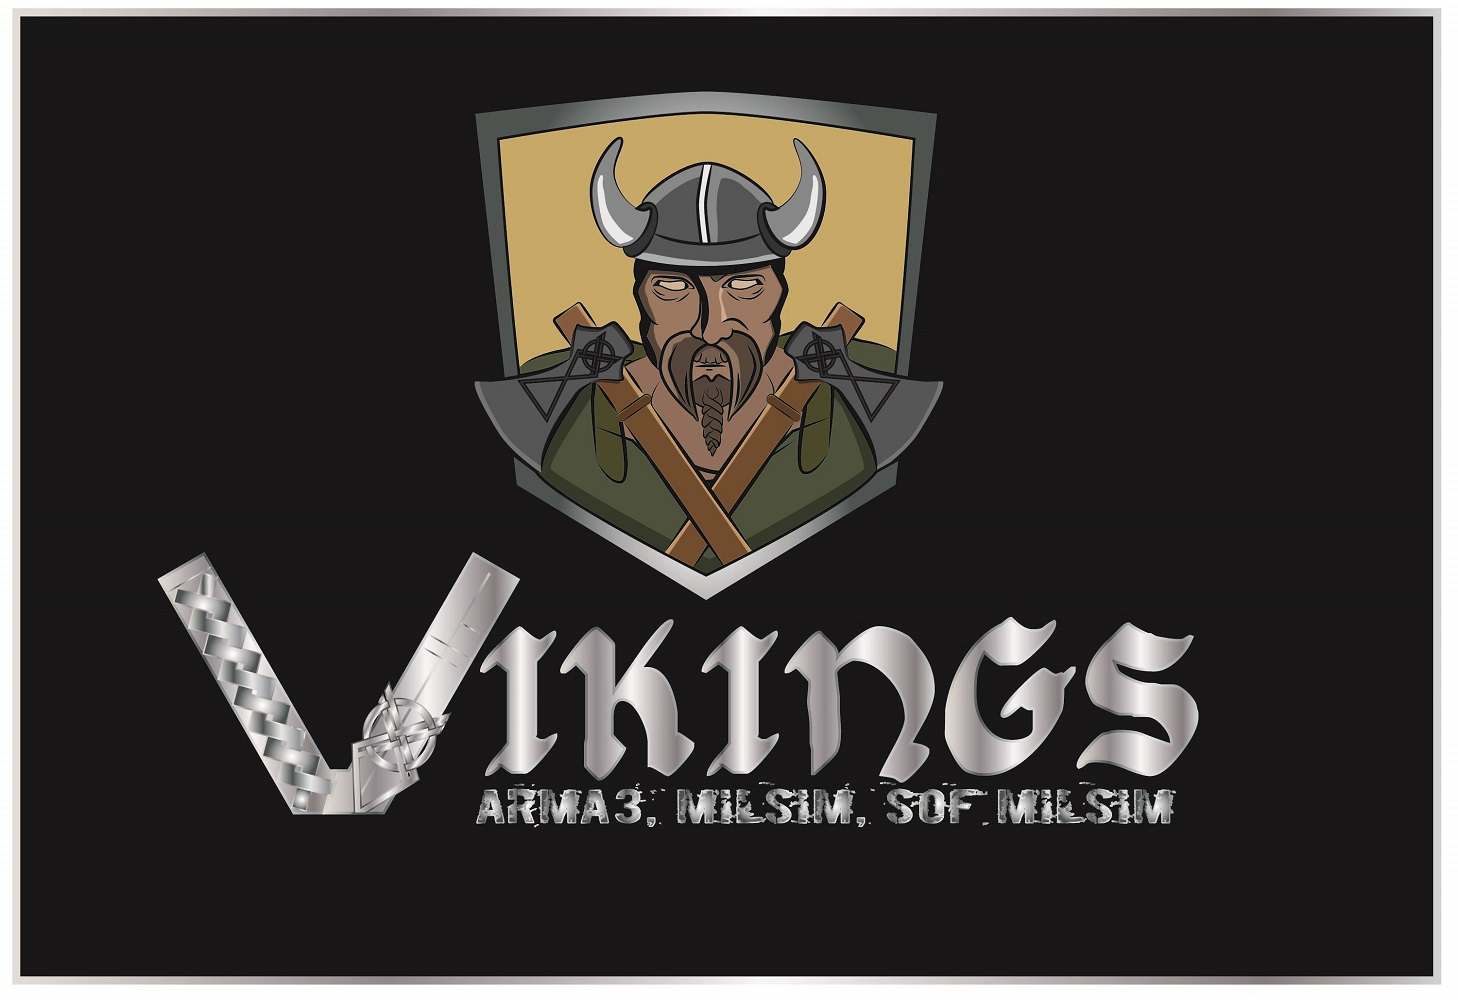 Logo Design by iwyn - Entry No. 21 in the Logo Design Contest Logo Design for Viking 9-3 MilSim Unit.